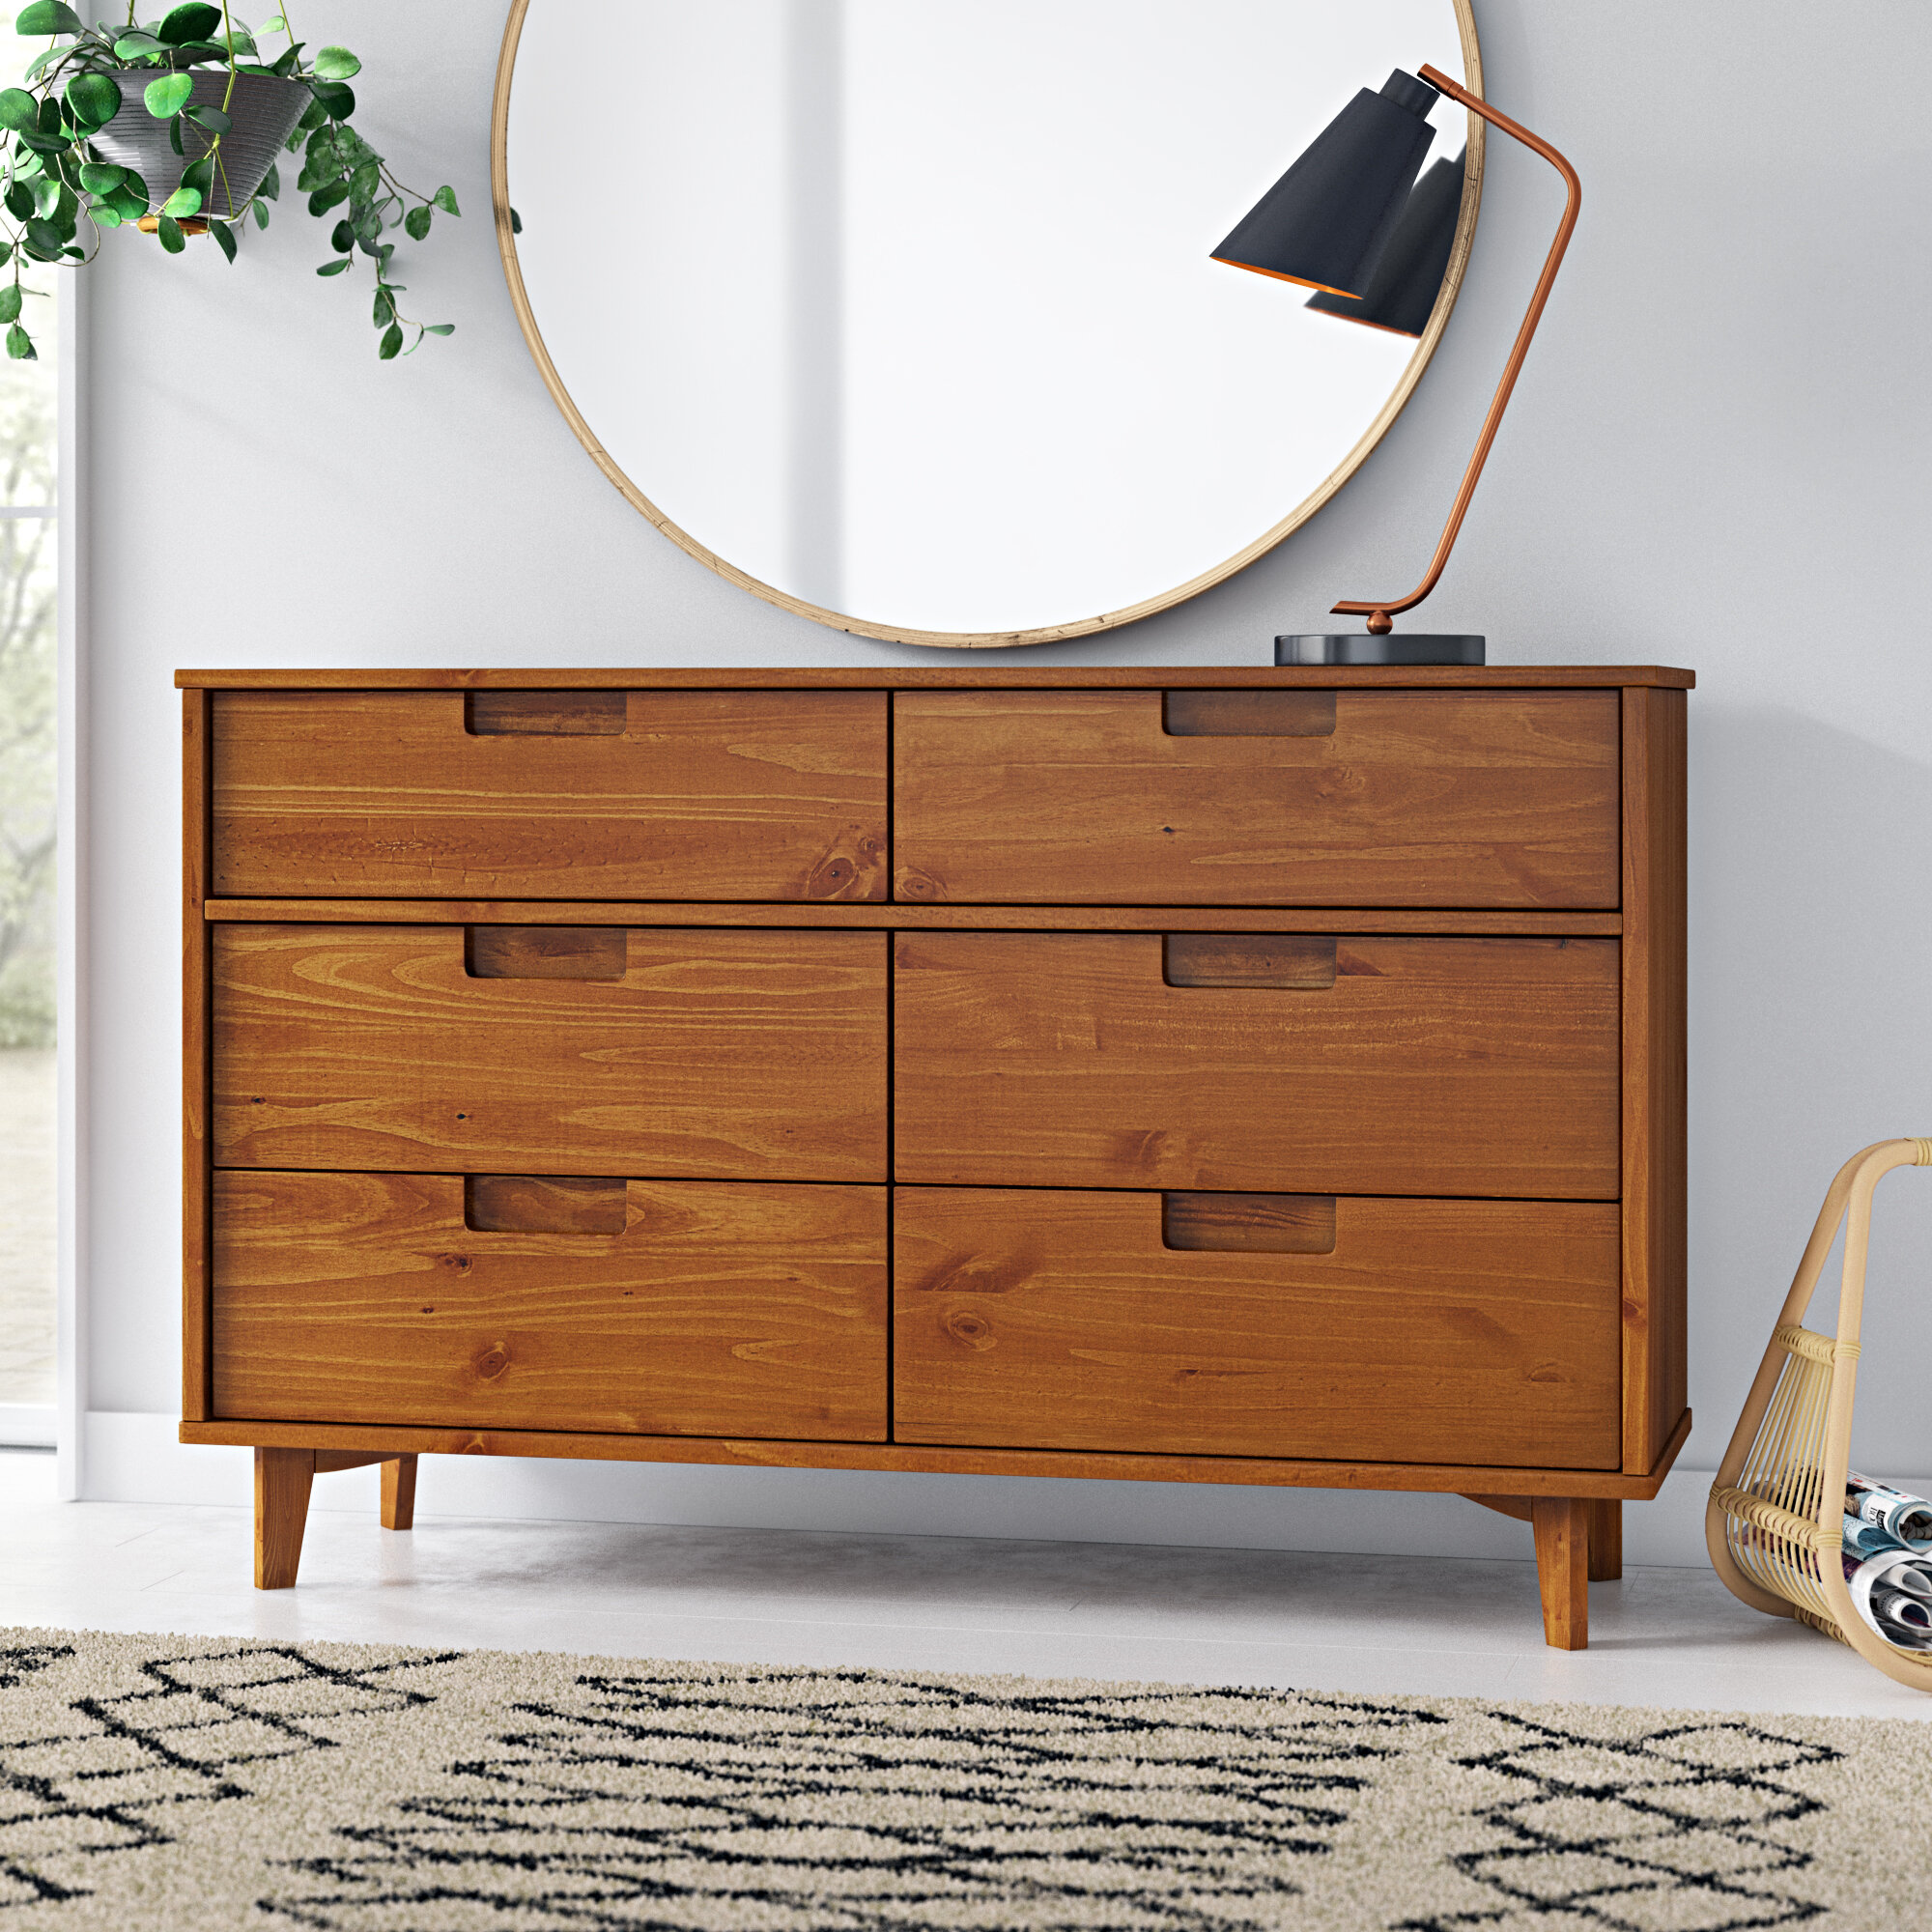 Mid Century Modern Solid Wood Dressers Chests You Ll Love In 2021 Wayfair